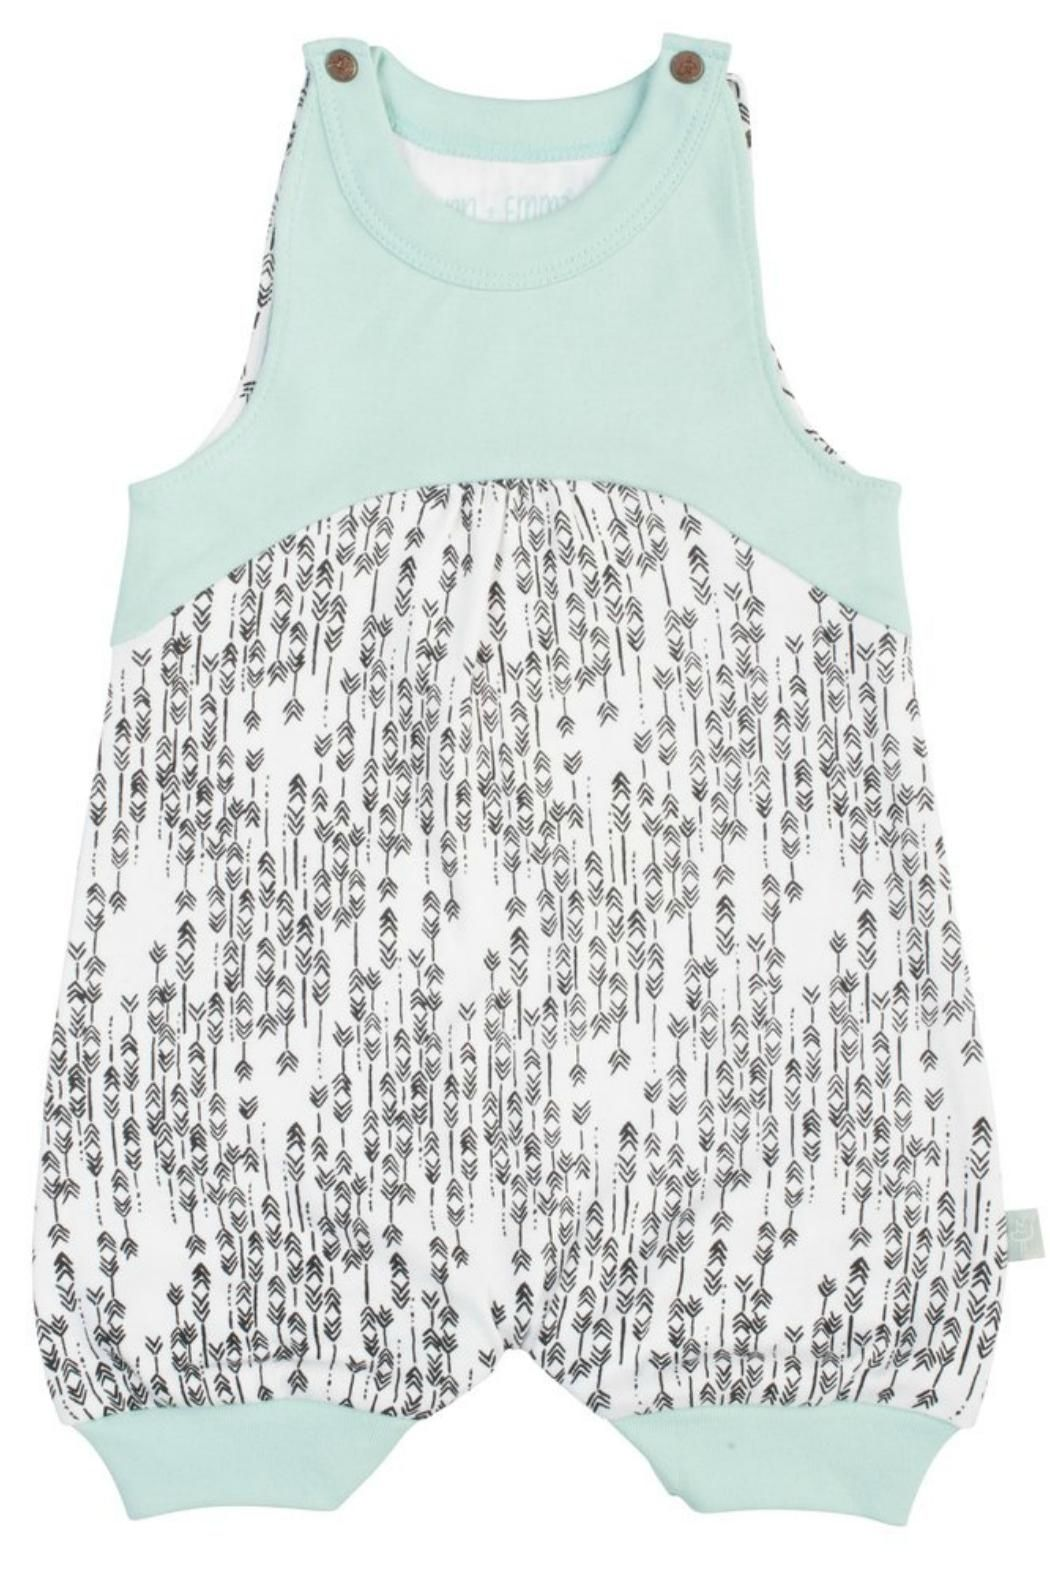 b69c659e6ef8 Tank Top style romper with arrow design. 100% Global Organic Textile  Standard (GOTS) certified organic cotton. Non-toxic dyes. Lead- and  nickel-free snap ...